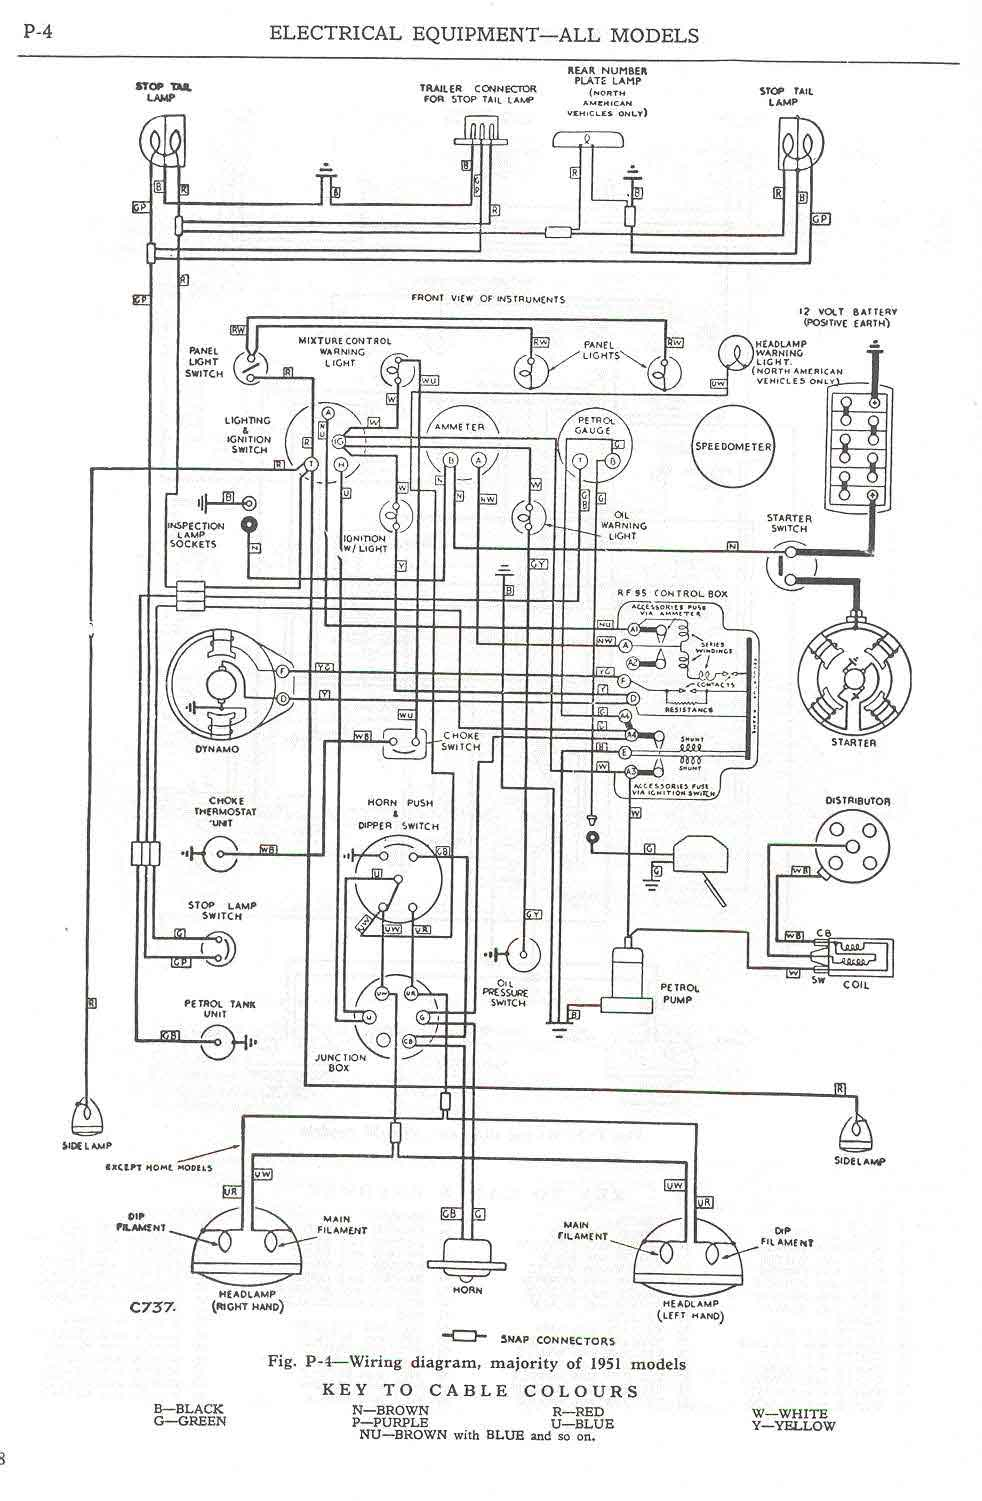 hight resolution of rover p4 electrical diagram great installation of wiring diagram u2022rover p4 wiring diagram wiring diagram